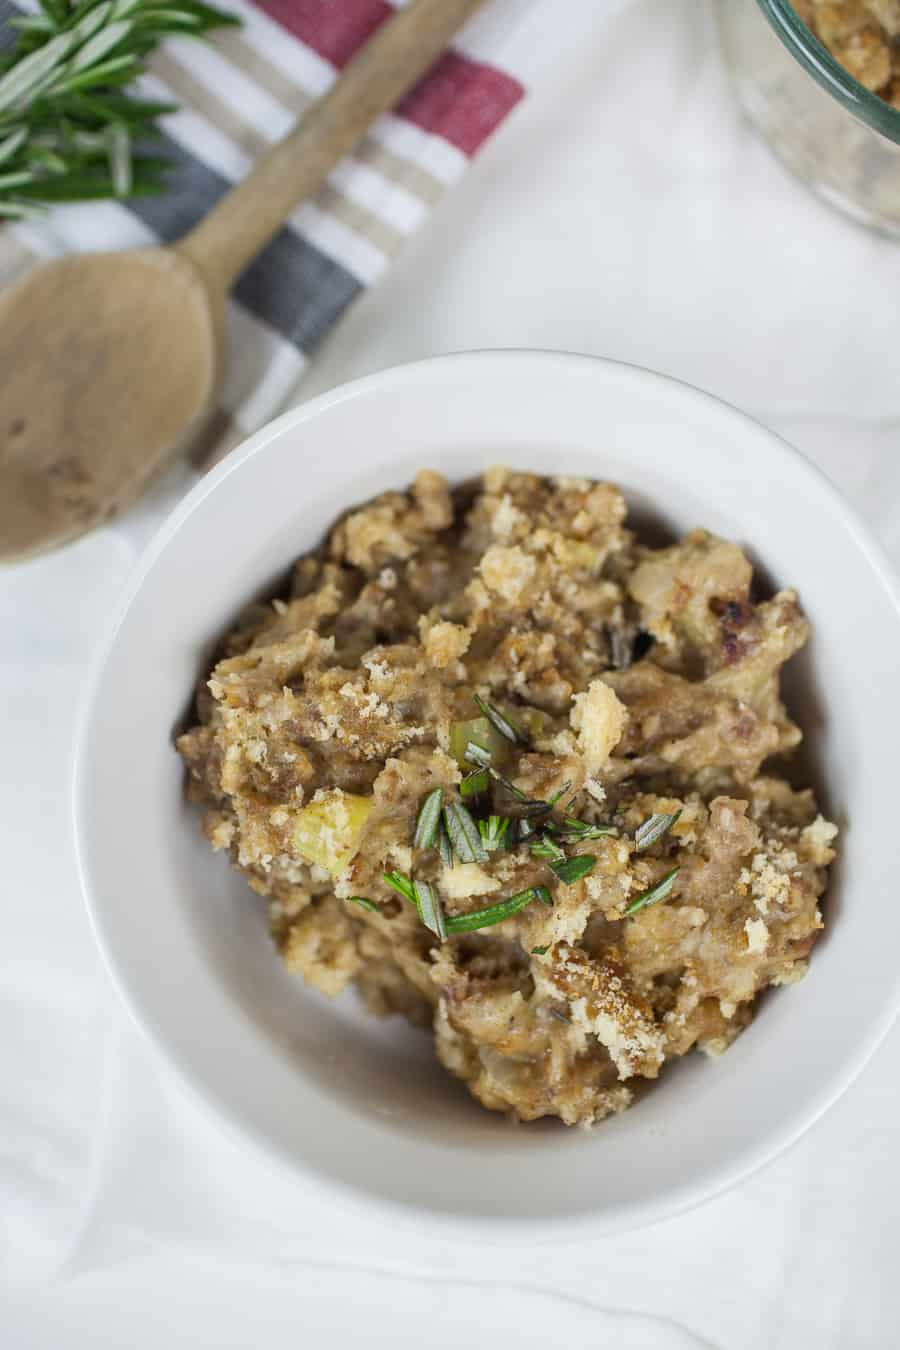 This stovetop sausage stuffing is a family favorite and is the perfect side dish to accompany your holiday turkey! Get this family recipe below.